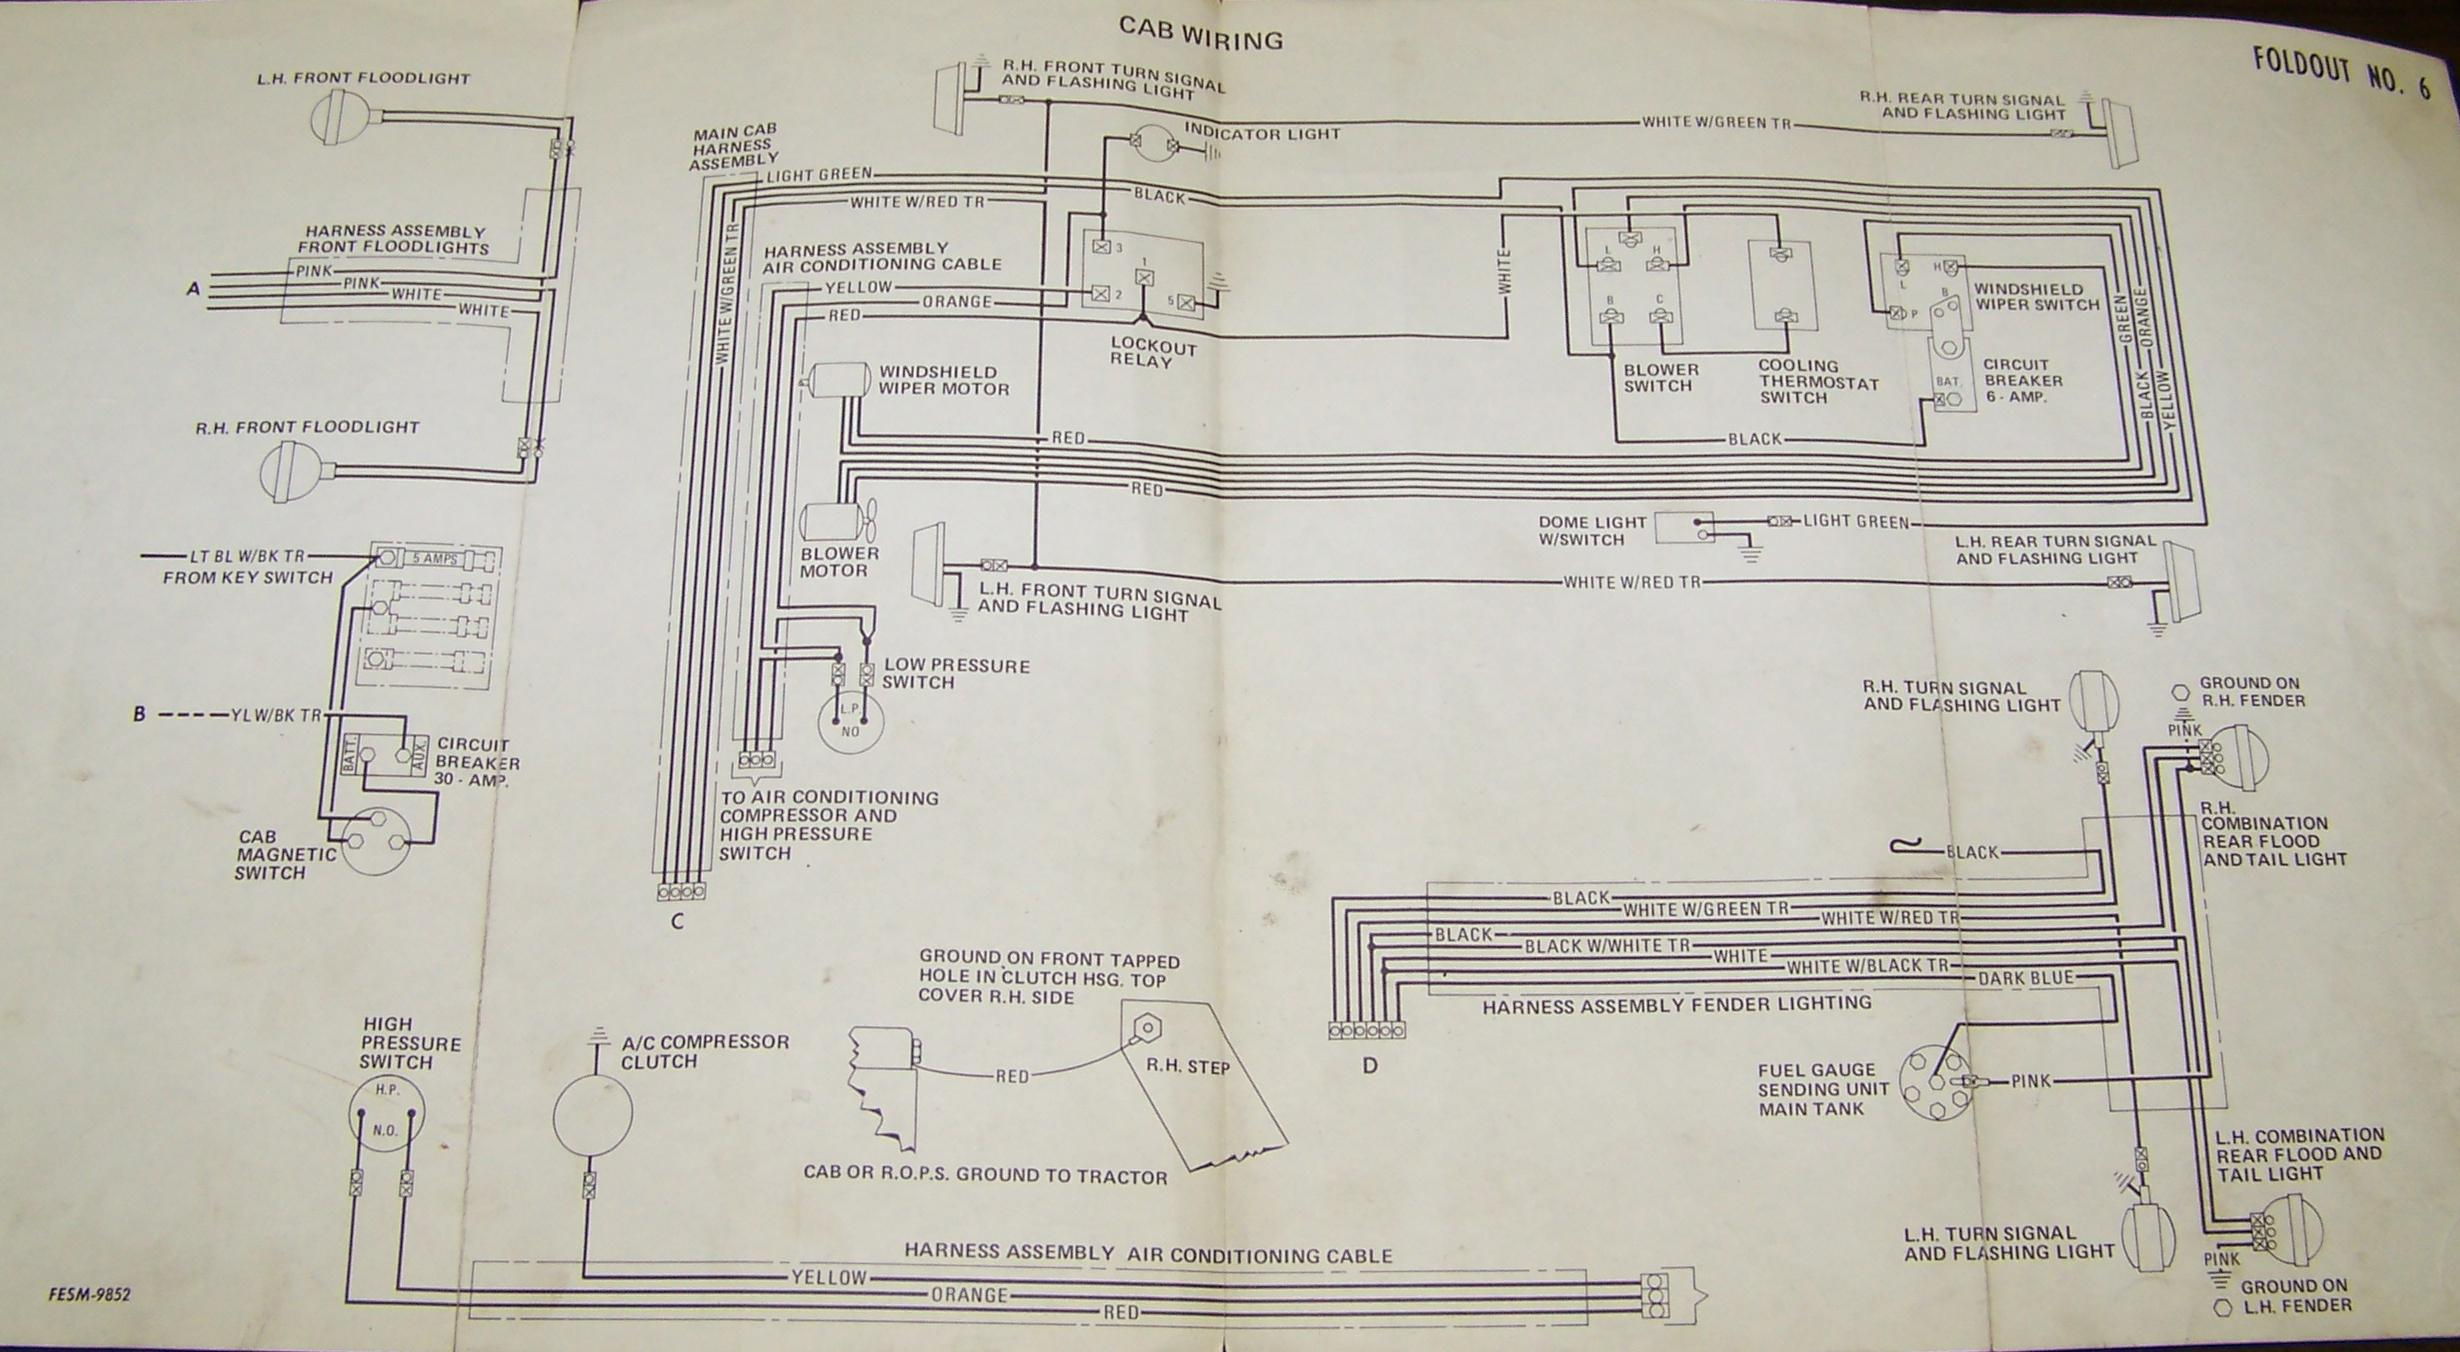 John Deere Can Wiring Bus Data Schematic 111 International 254 Diagram Detailed Schematics Rh Lelandlutheran Com Garden Tractor Harness